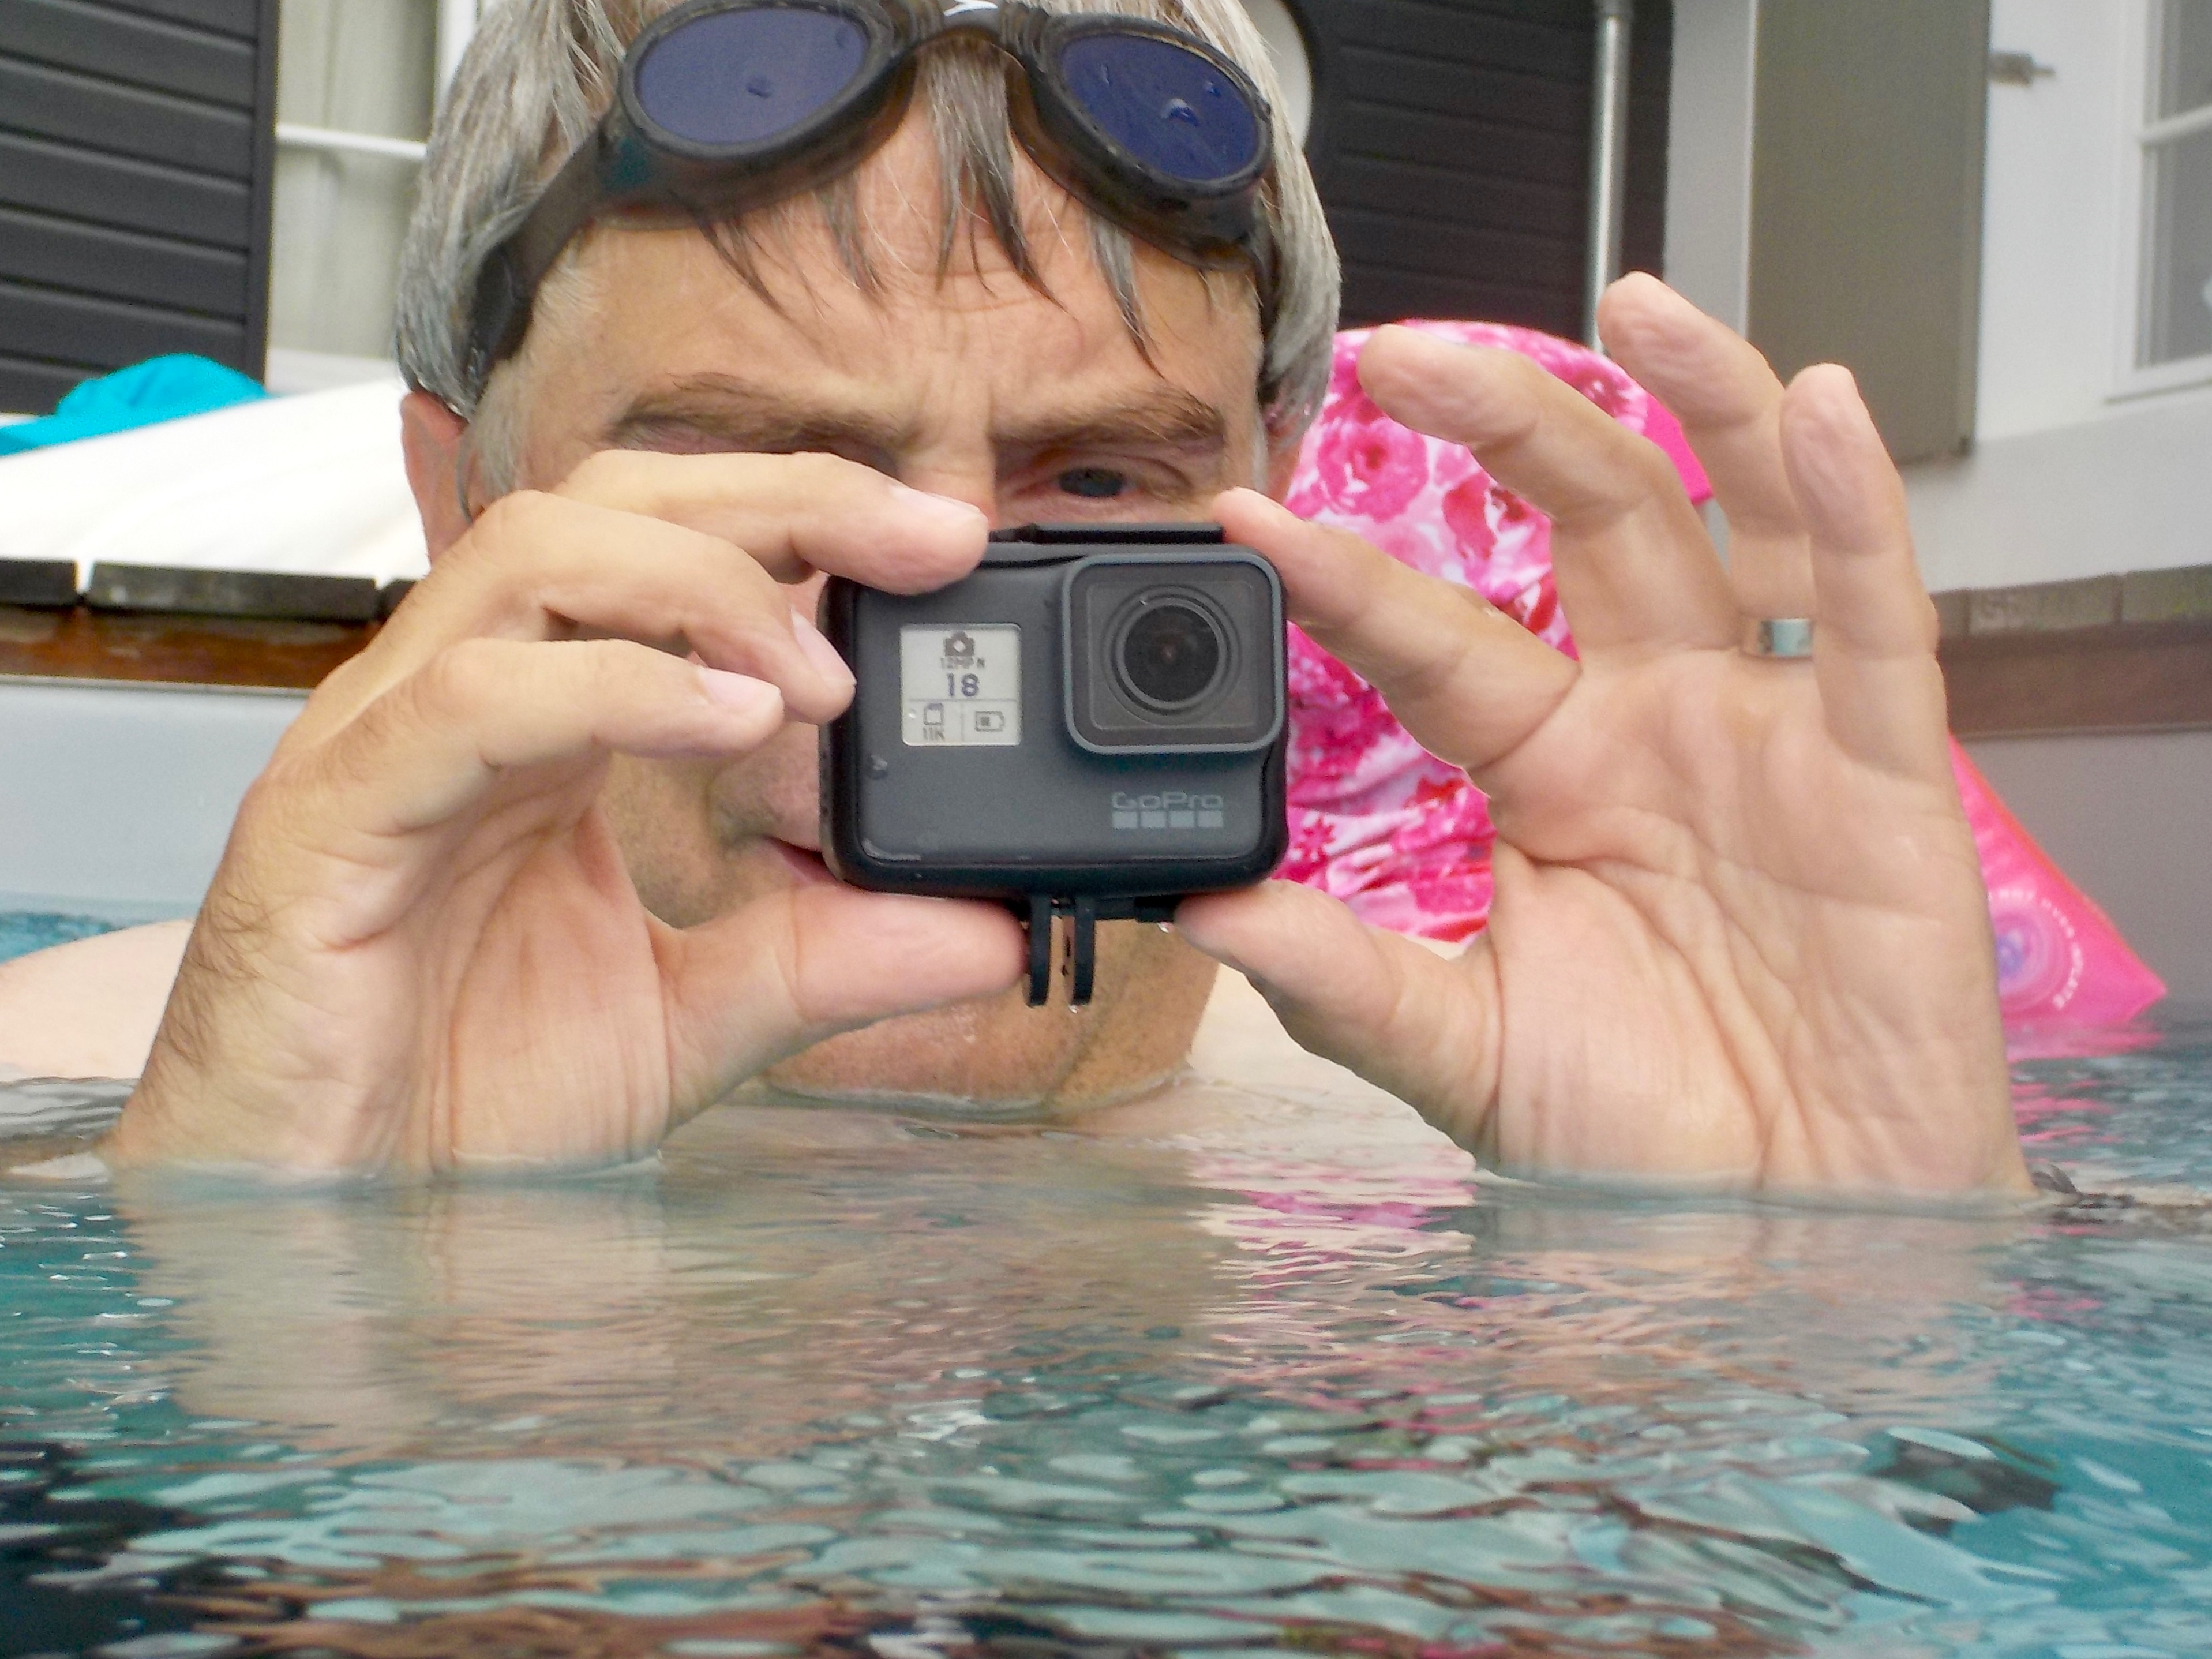 Adam Tinworth in a pool with a GoPro